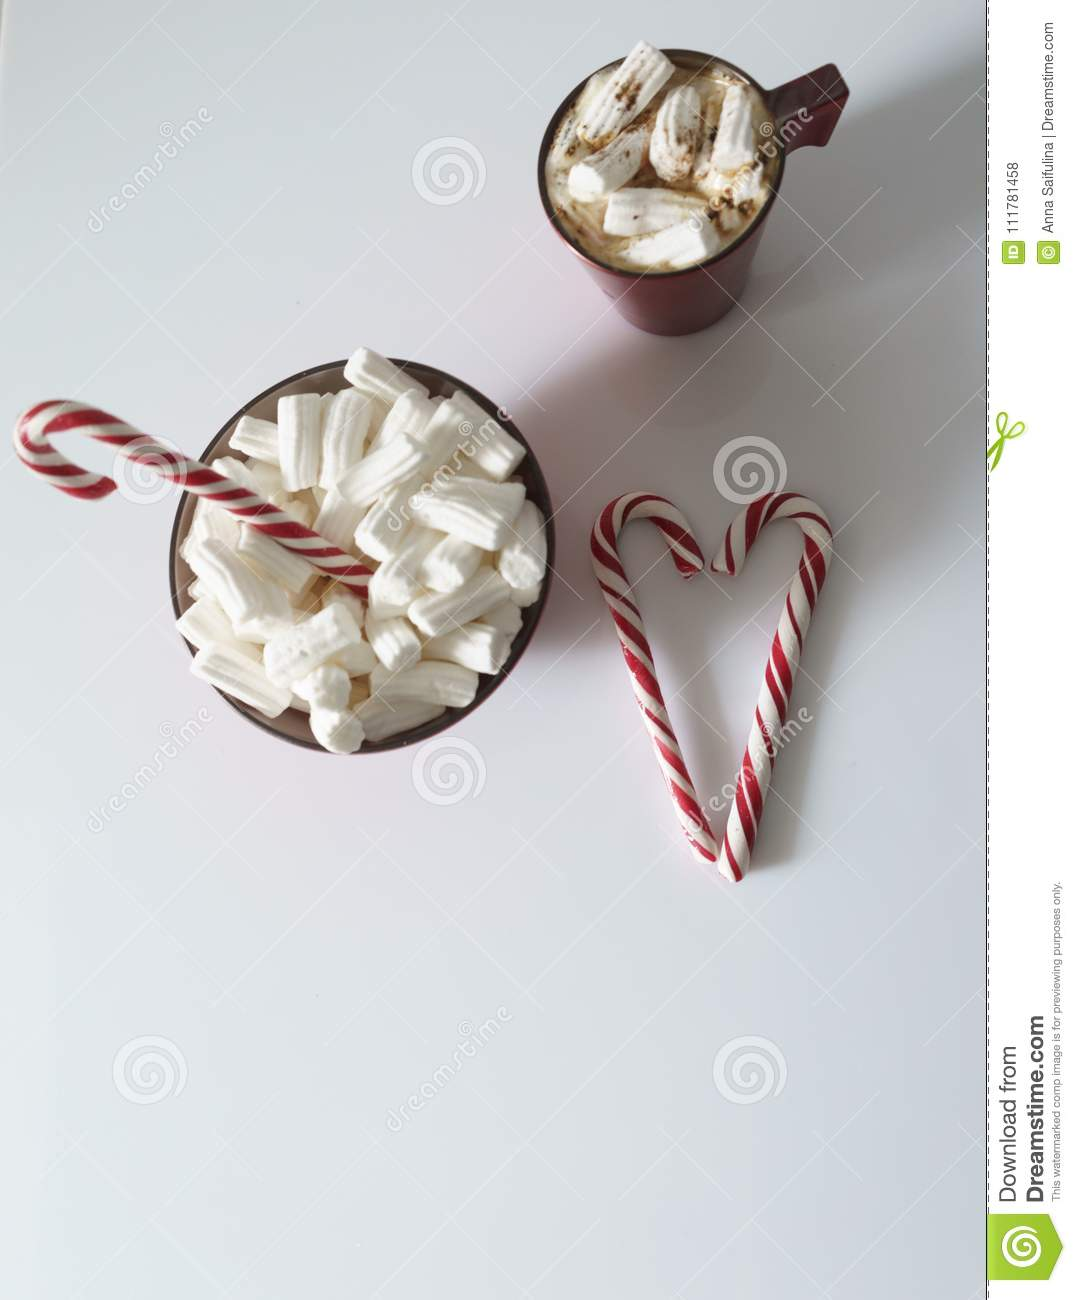 Christmas background, greeting card with a Cup of coffee or chocolate with marshmallows, lollipops and a red plate